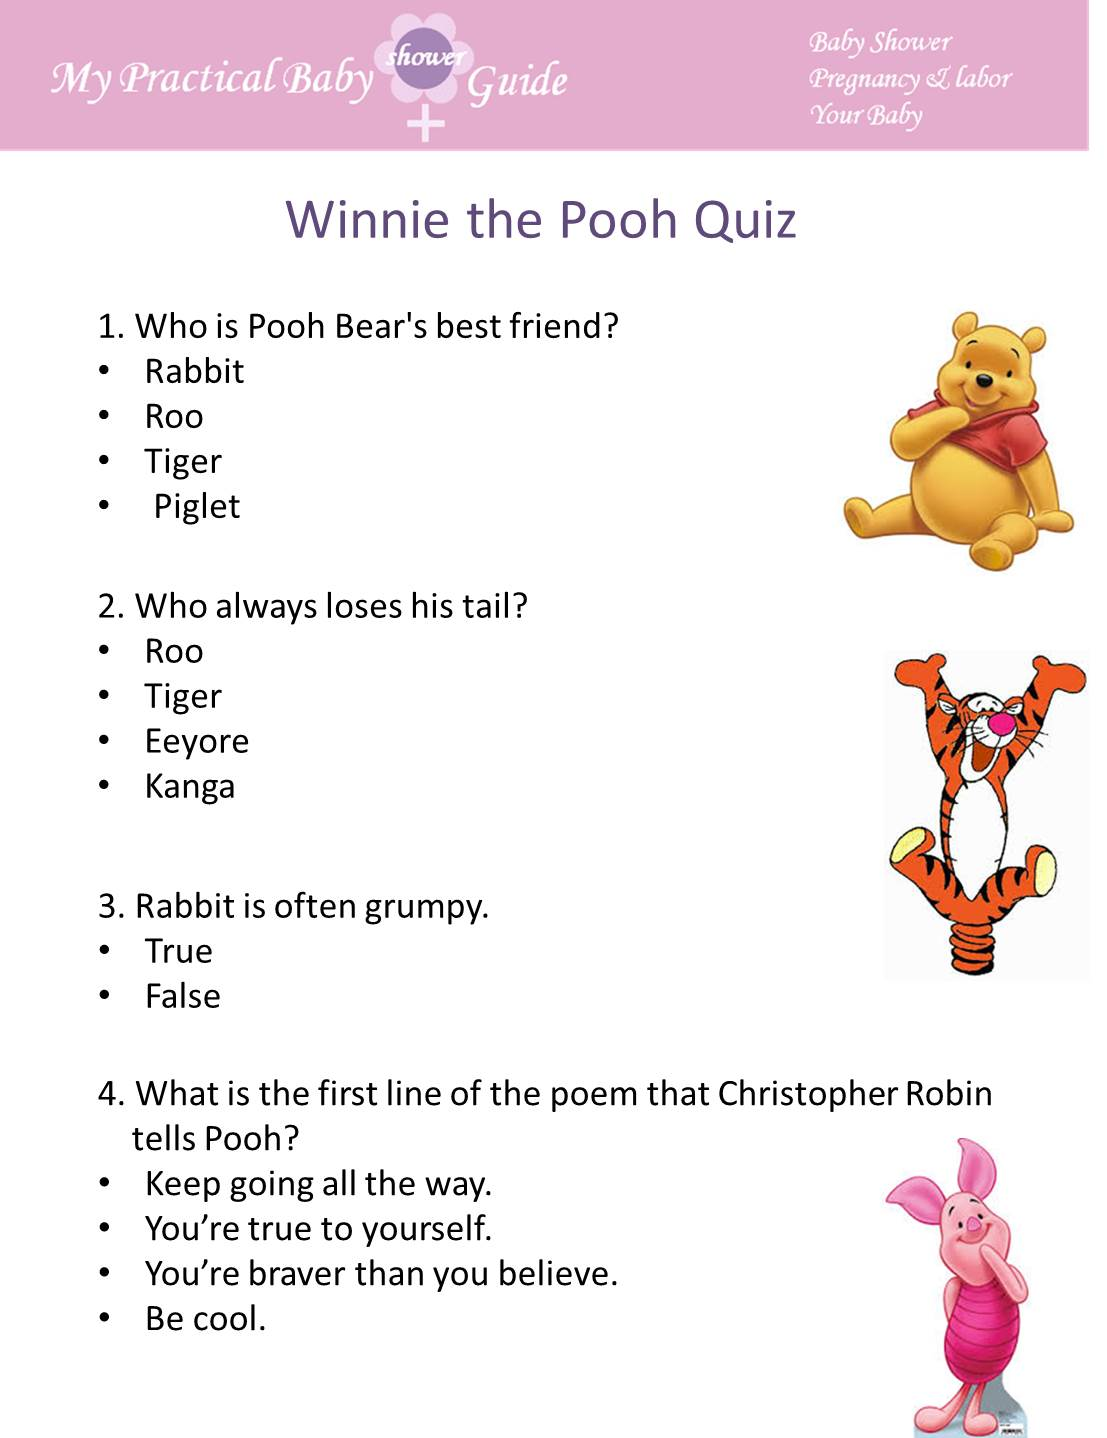 free winnie the pooh baby shower games  my practical baby shower, Baby shower